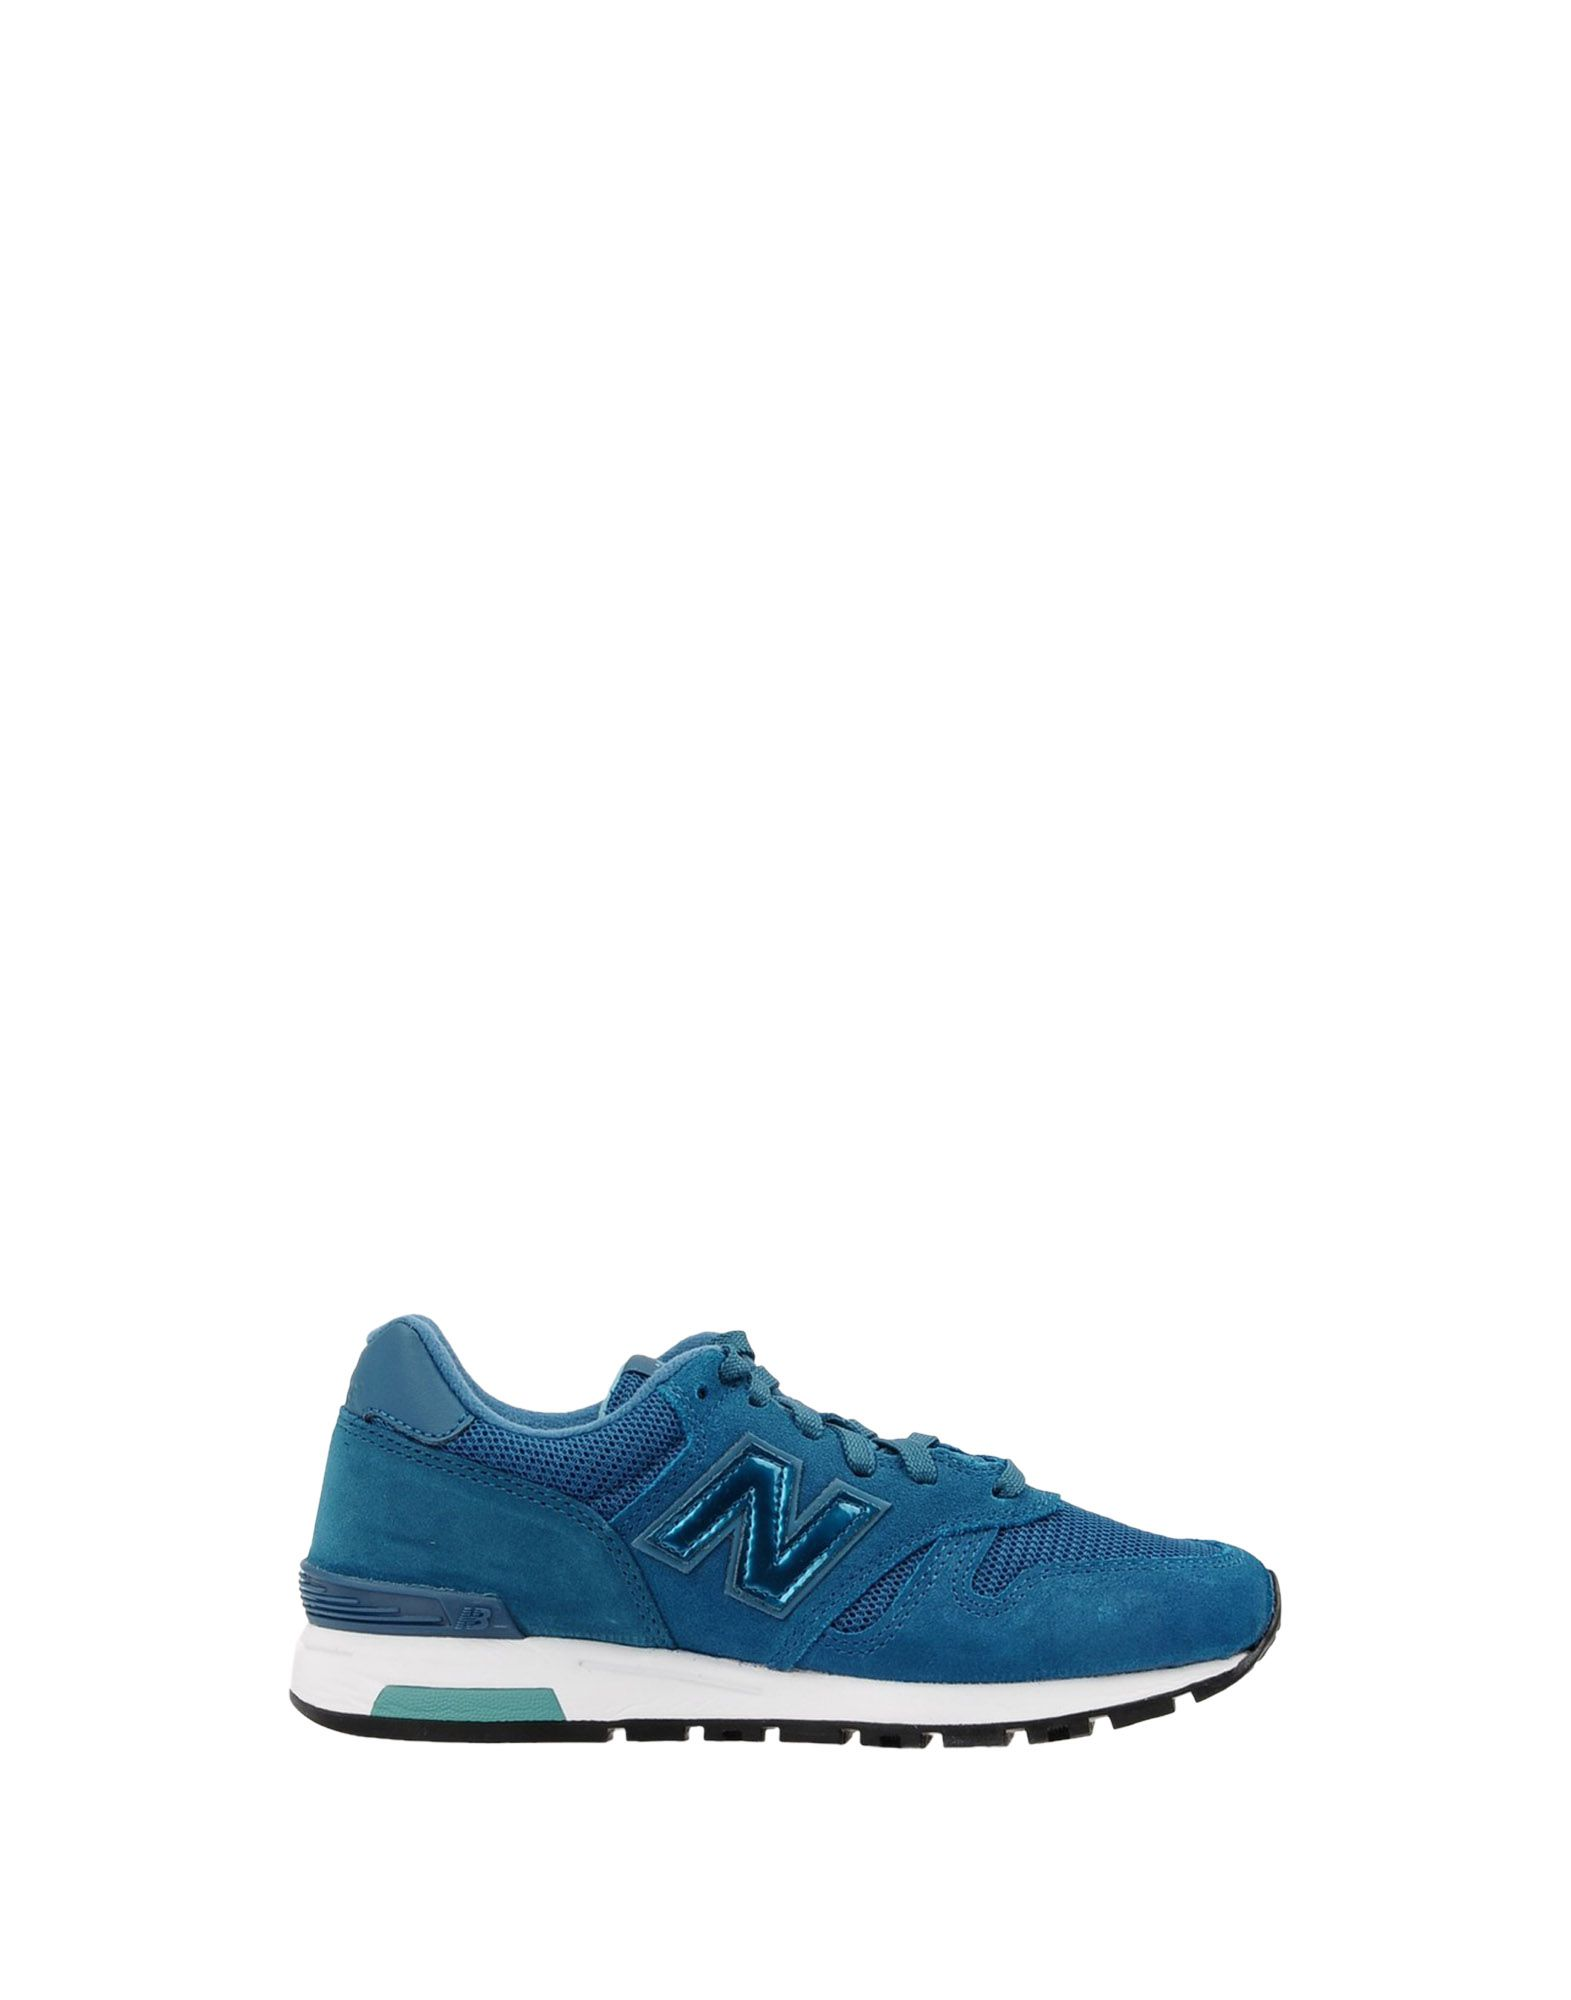 Sneakers New Balance 565 Suede Mesh Shining - Femme - Sneakers New Balance sur